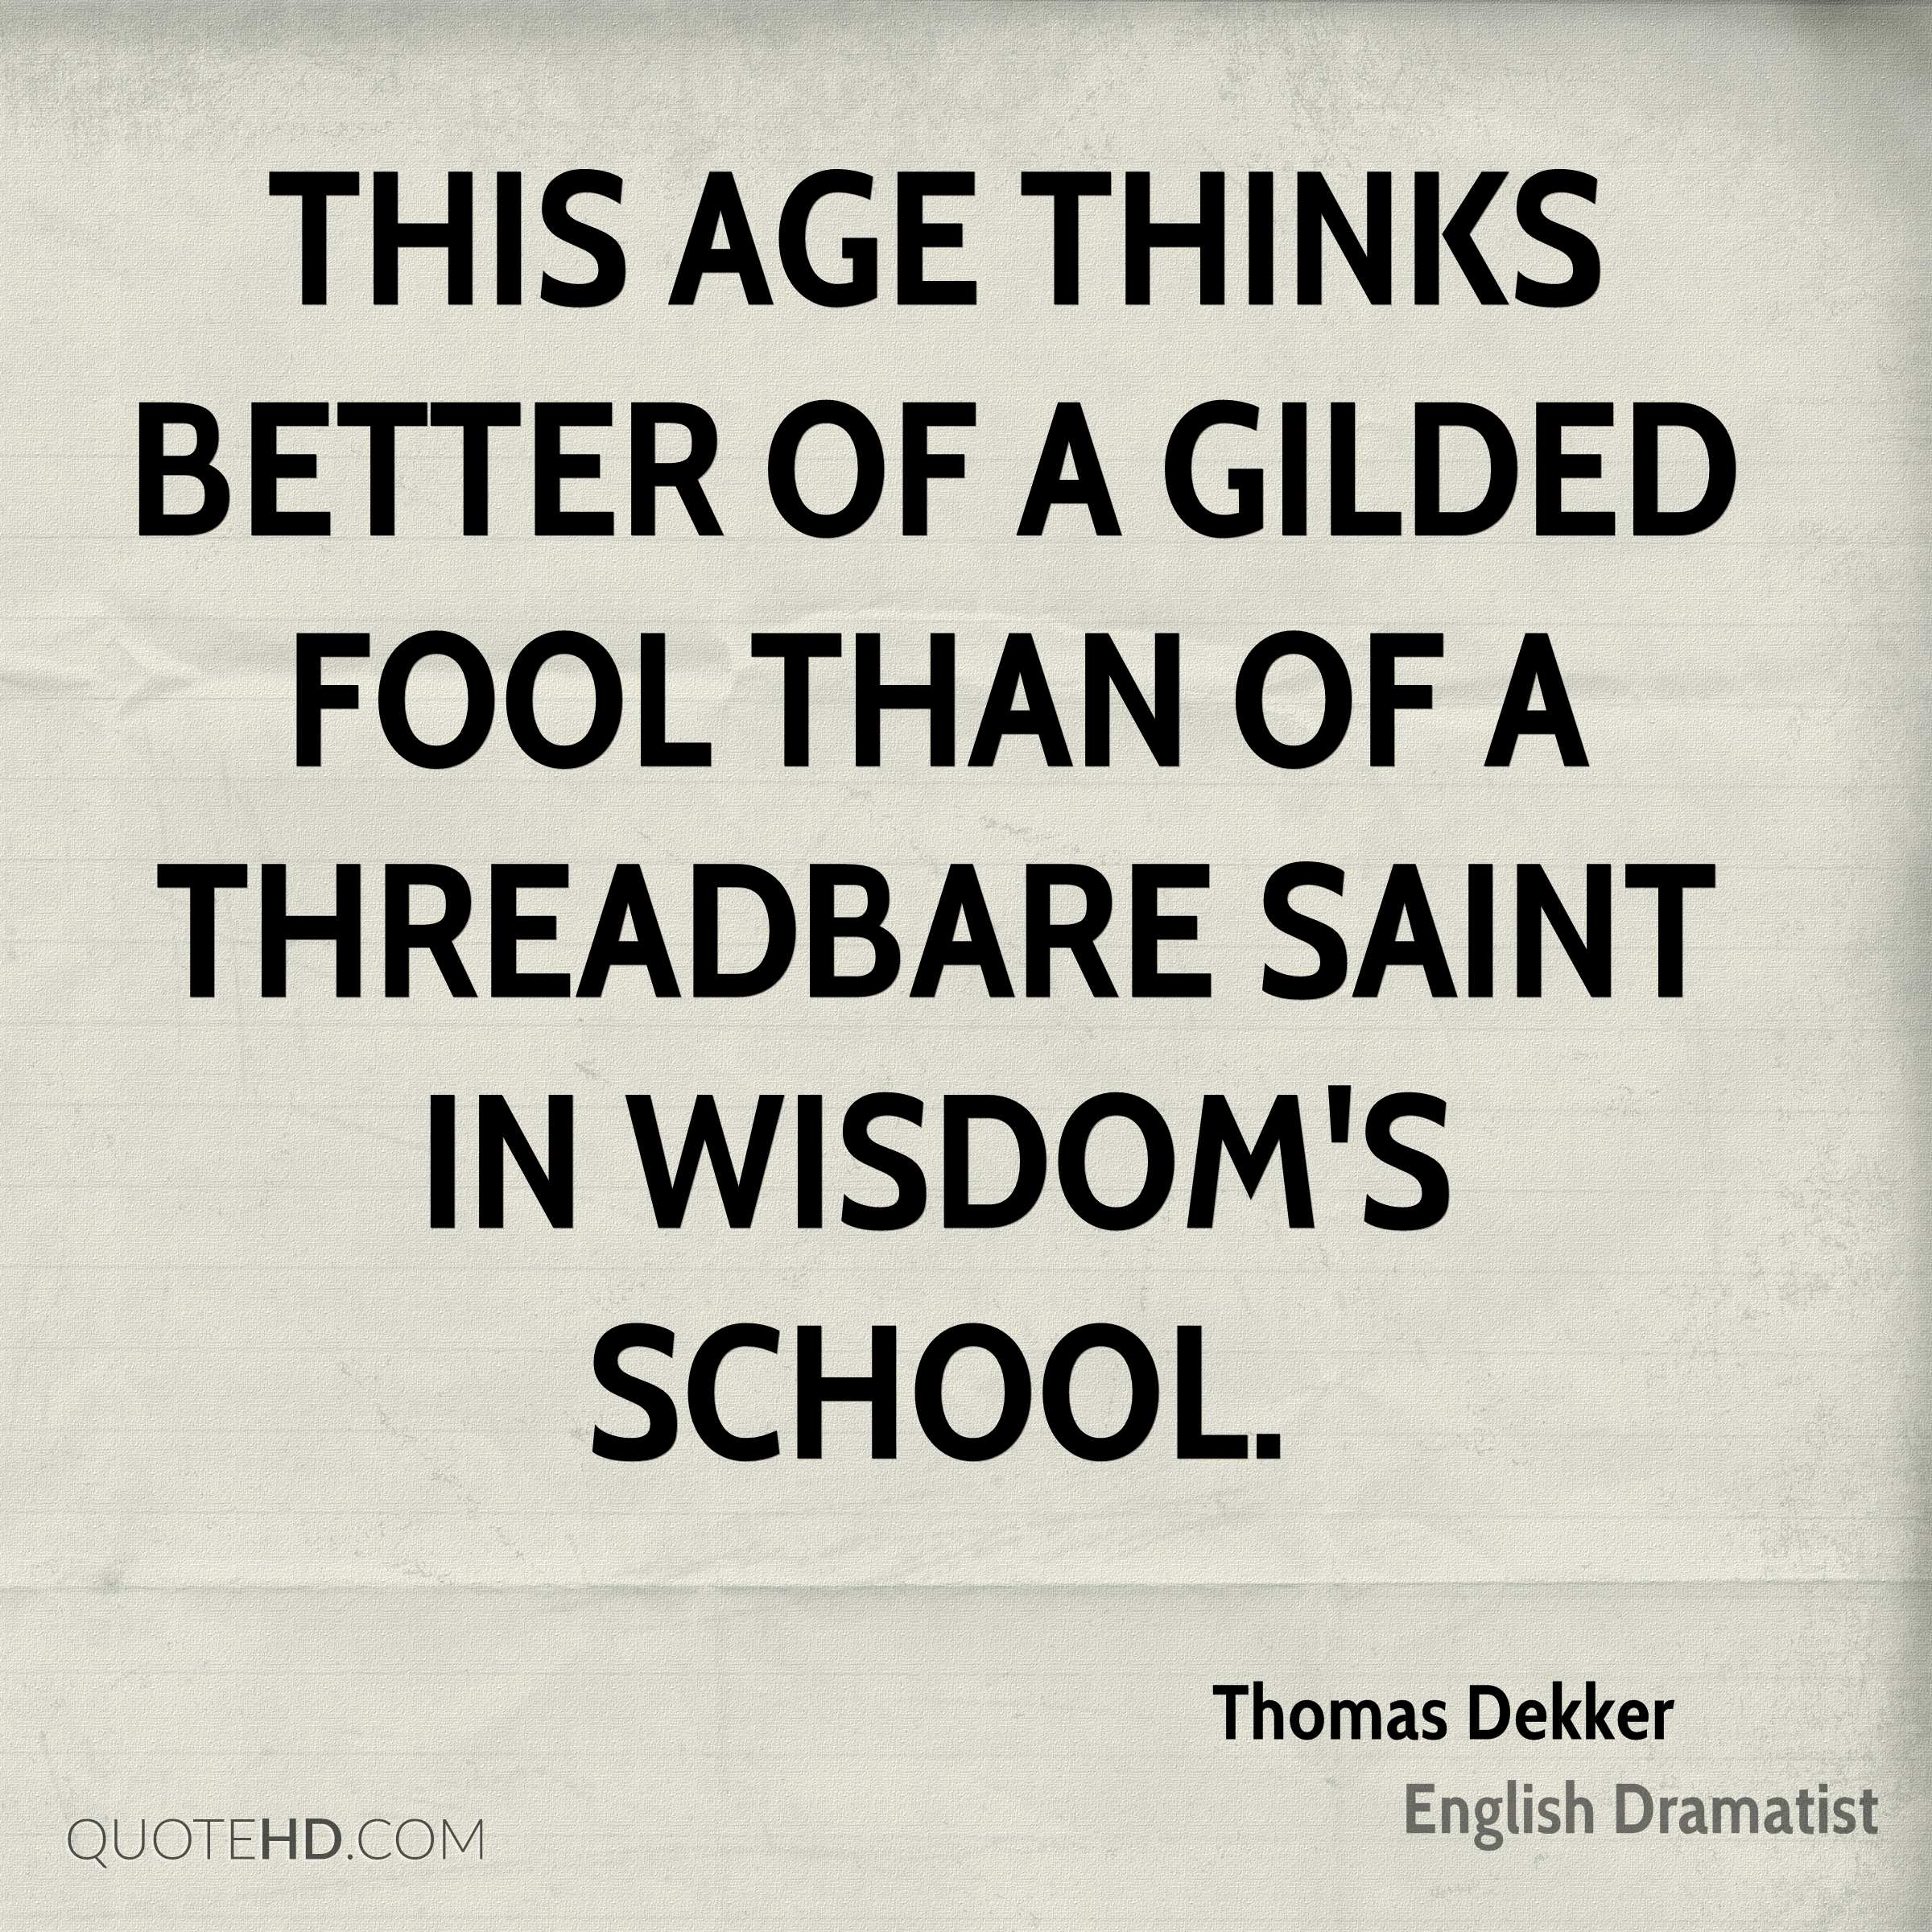 This age thinks better of a gilded fool Than of a threadbare saint in wisdom's school.